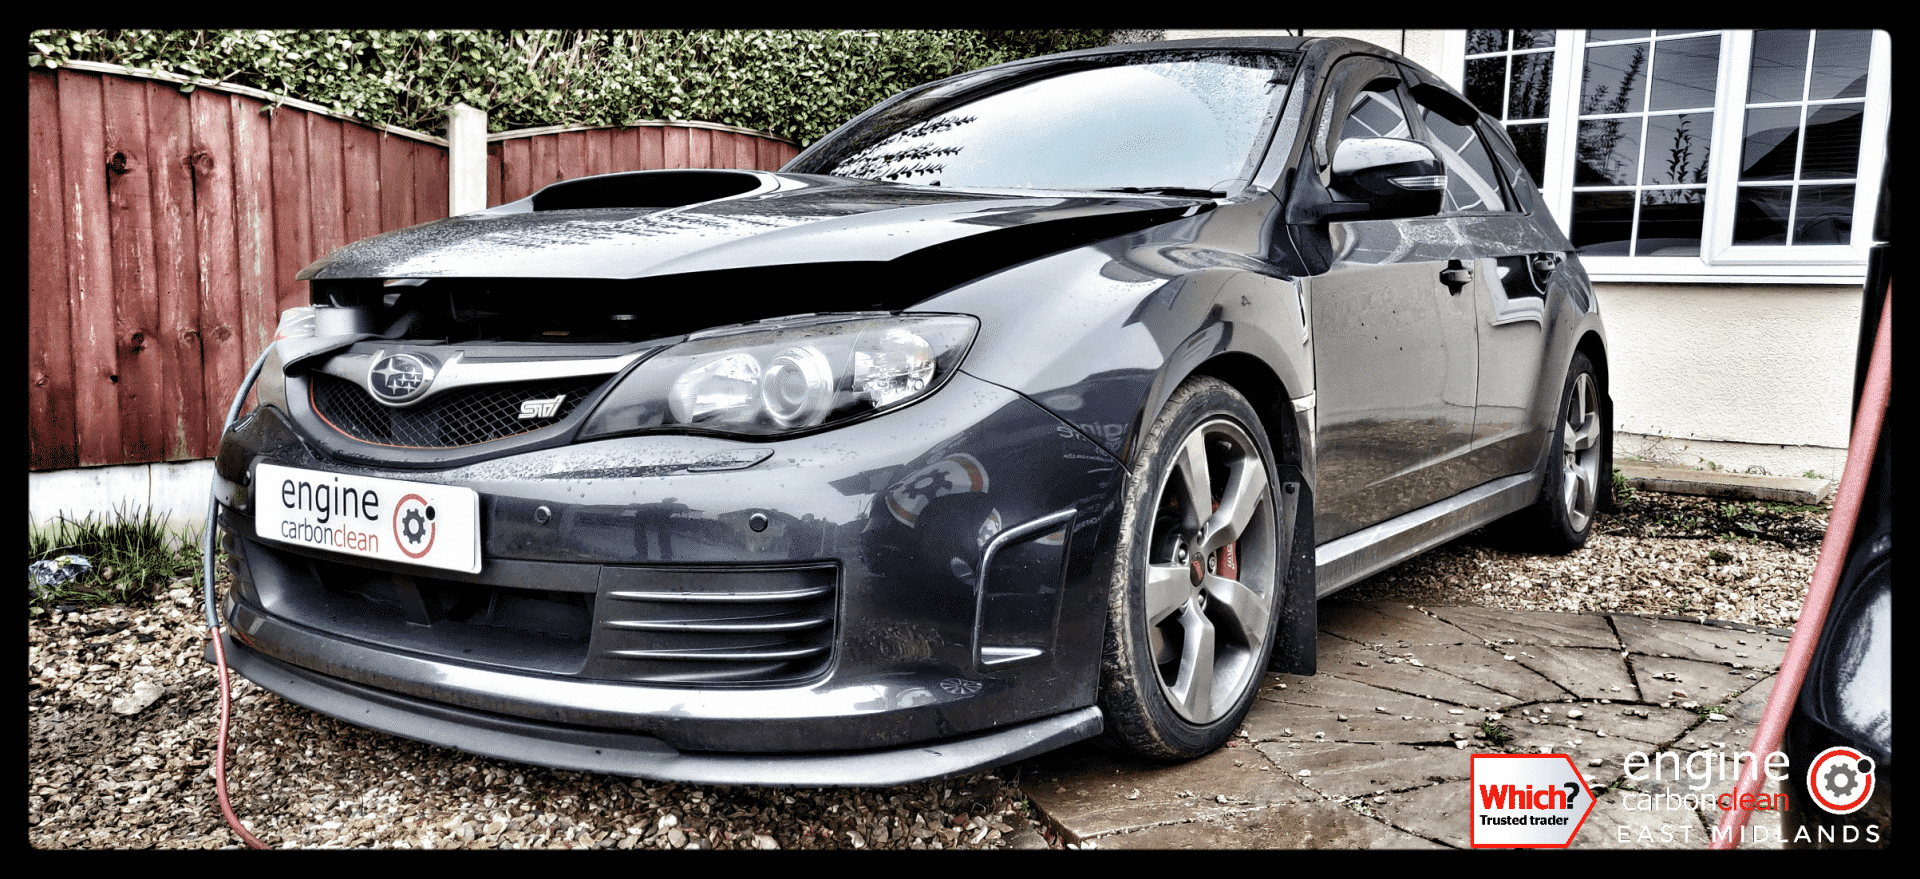 Diagnostic Consultation and Engine Carbon Clean on a Subaru WRX STI 330s (2009 - 45,709 miles)